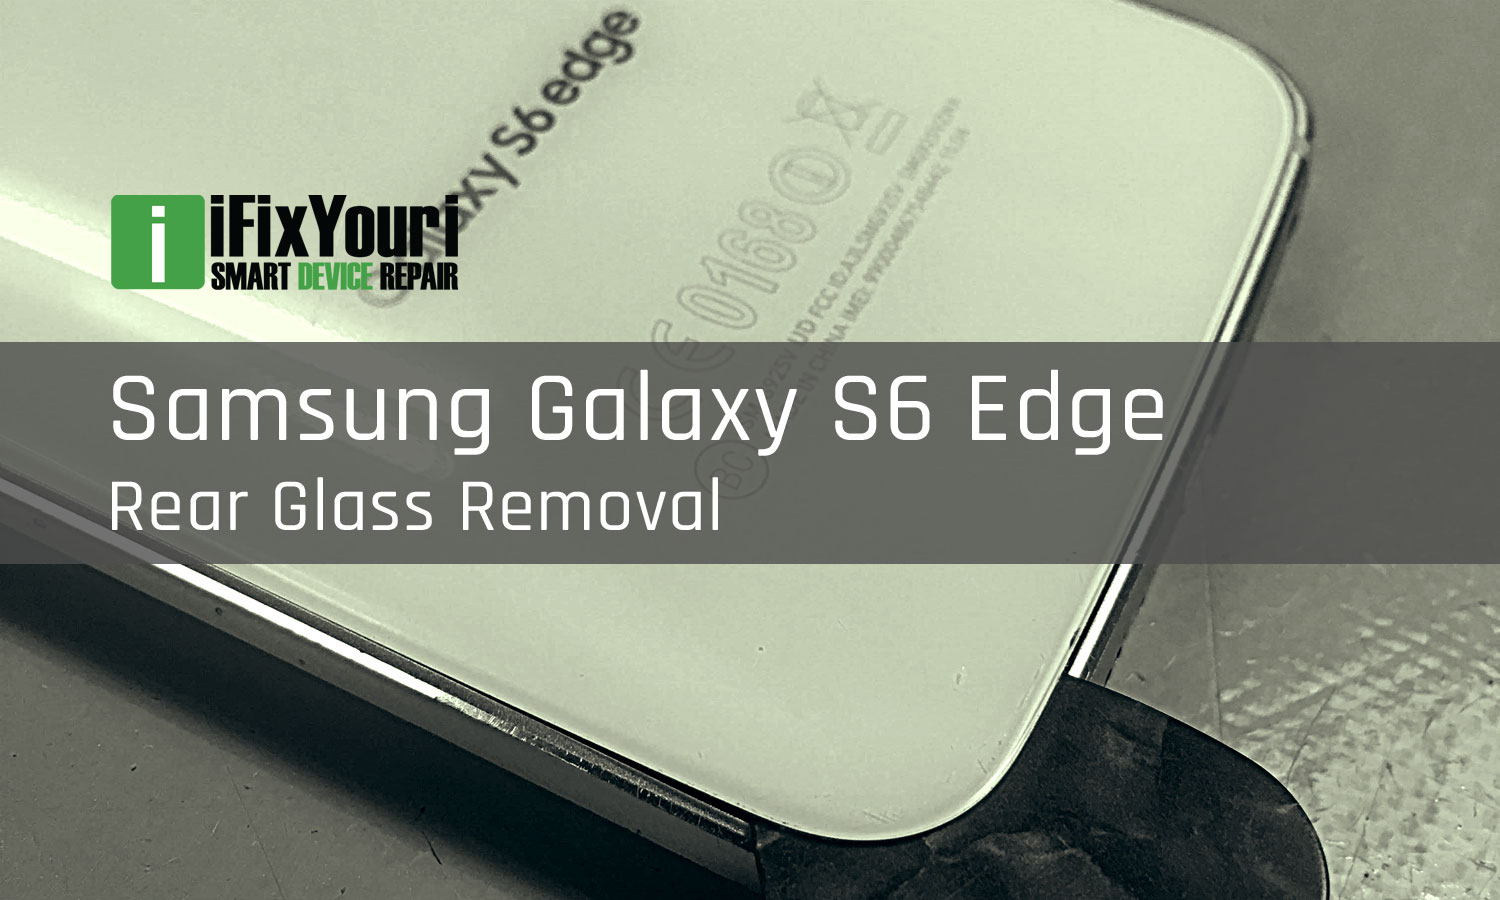 S6 Edge Rear Glass Removal Instructions: a how-to guide